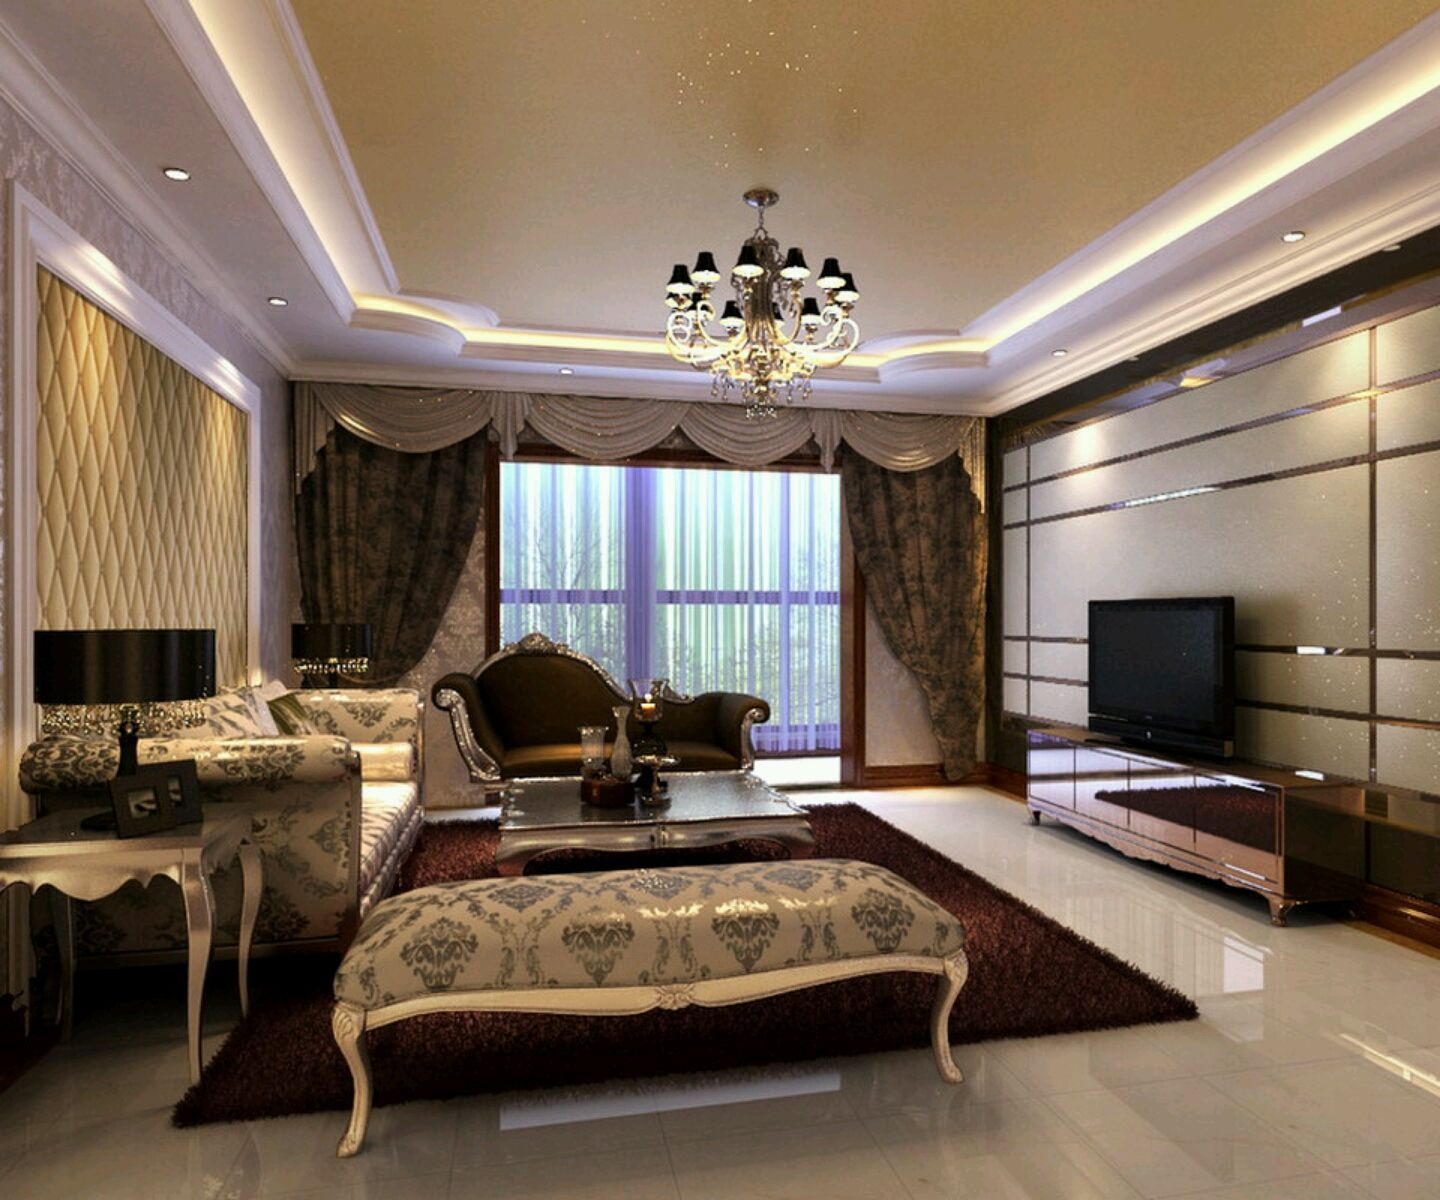 Interior design for luxury homes living room luxury designs luxury homes chic interior design living room